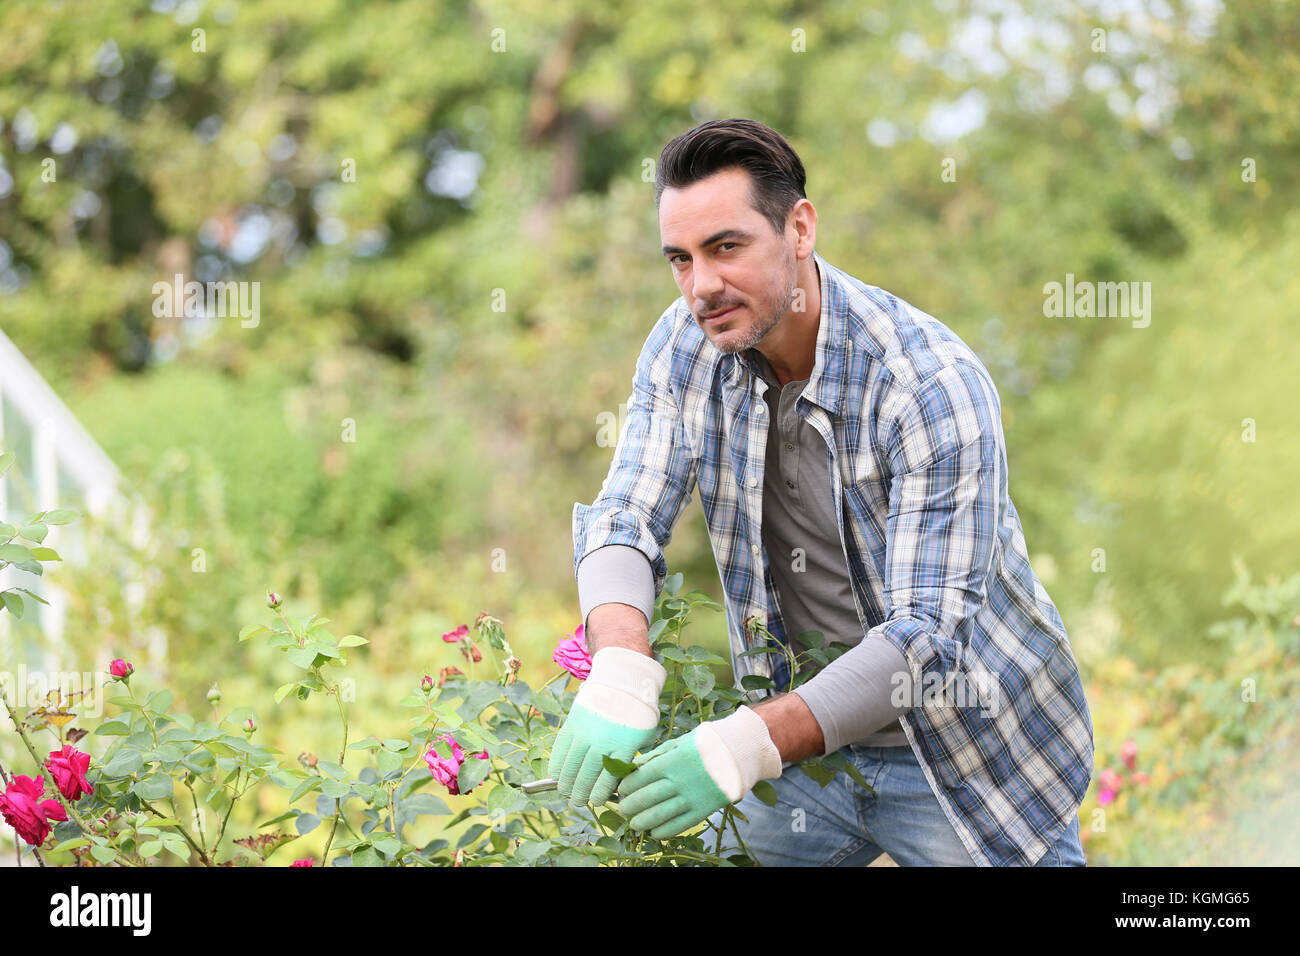 Man in botanic garden cutting roses - Stock Image